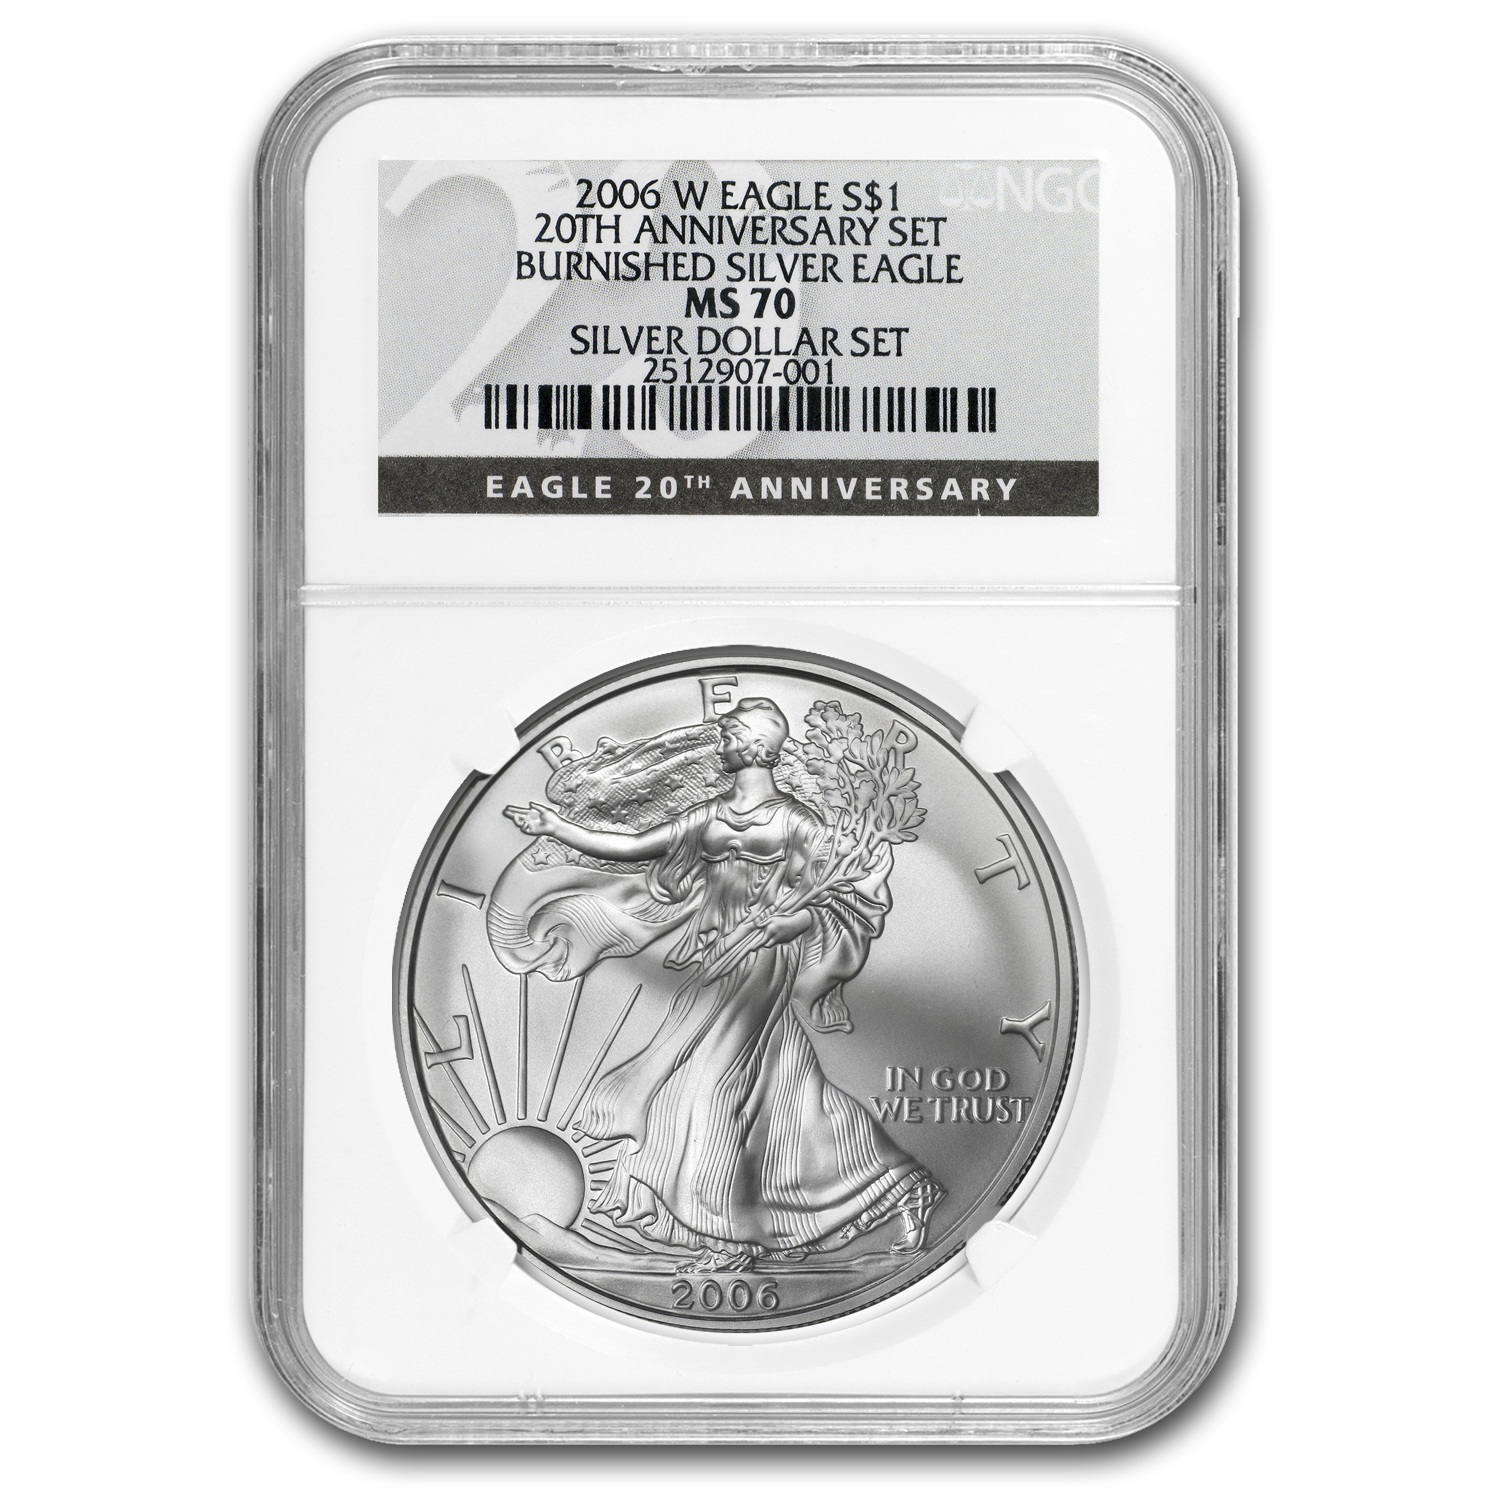 2006-W Burnished Silver Eagle MS-70 NGC (Silver Dollar Set)